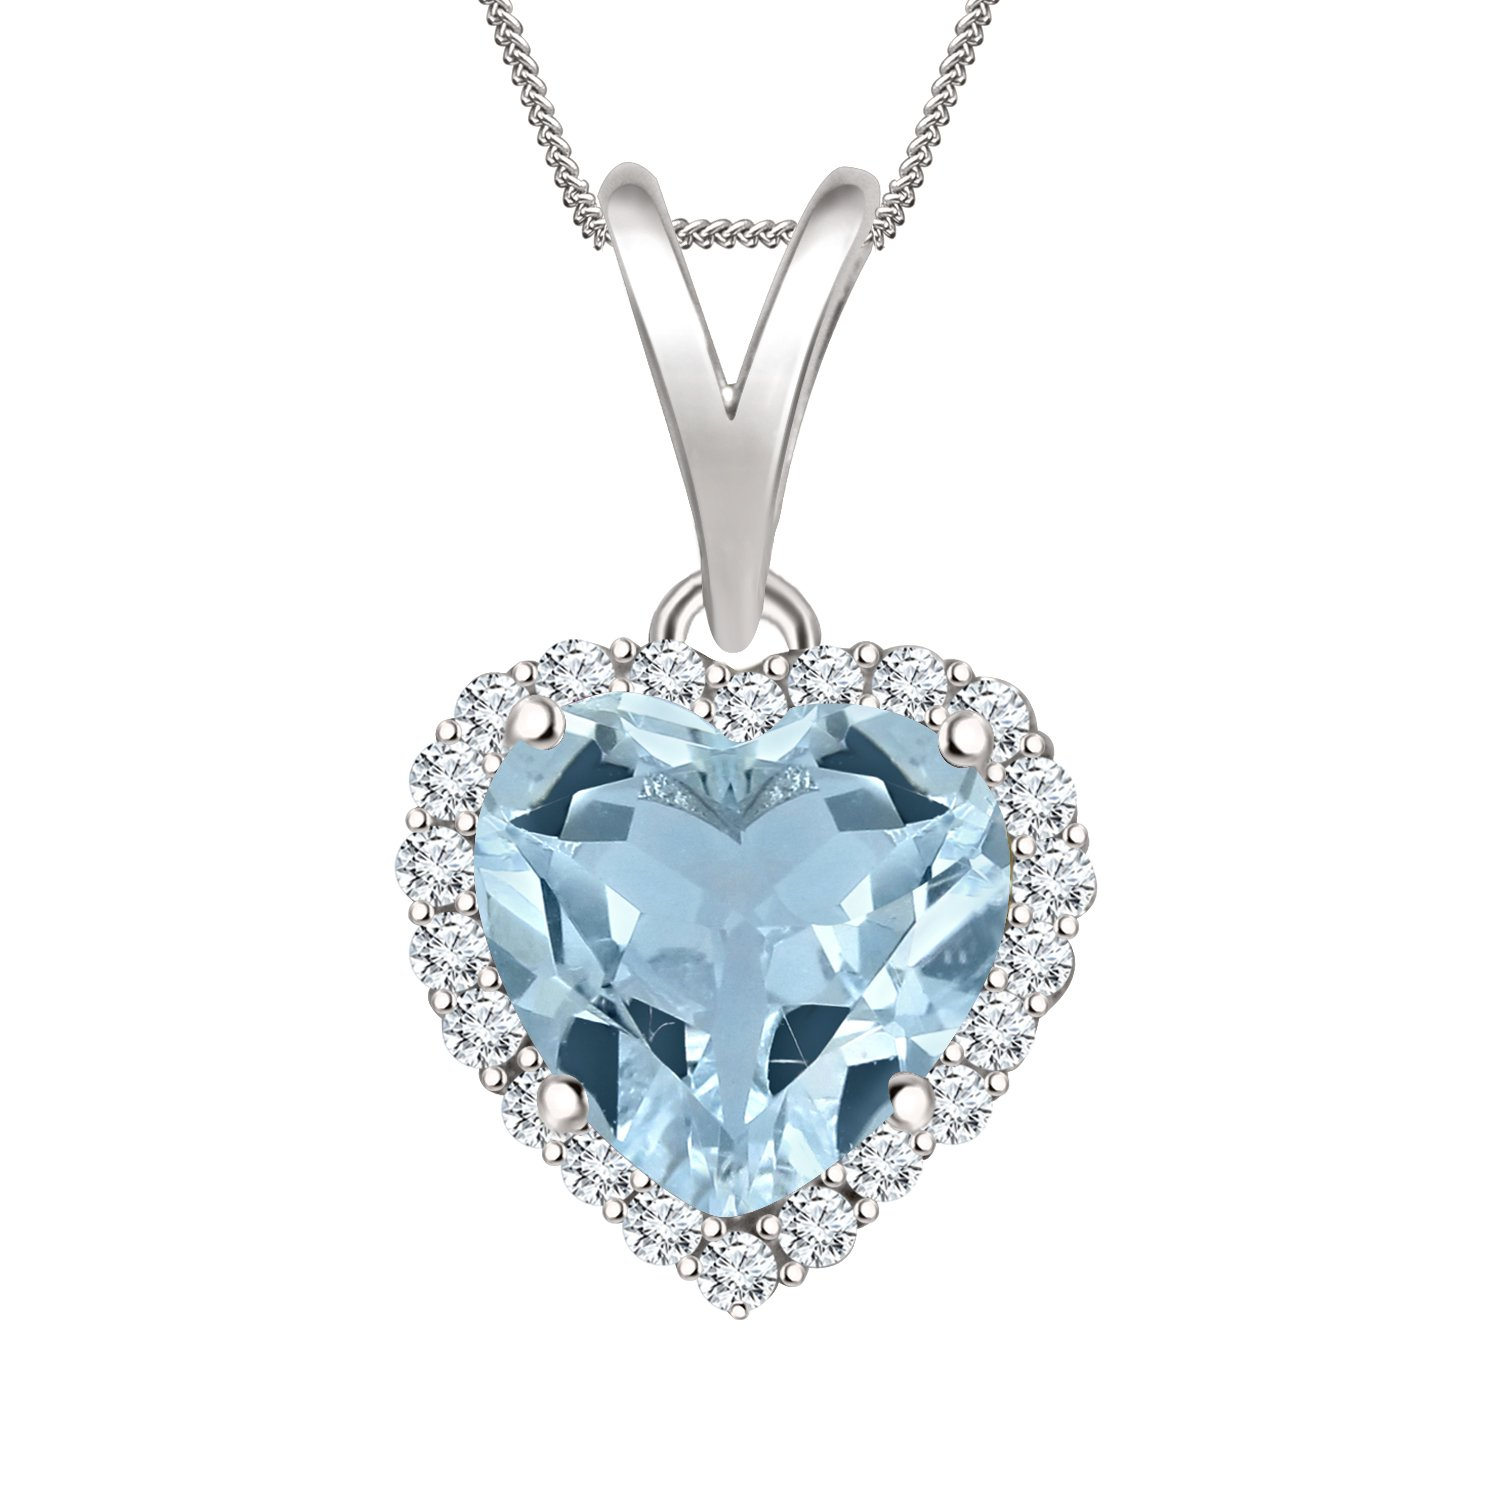 Shakti Jewels Color CZ Heart Halo Pendant Necklace Chain in Sterling Silver 14K White Gold Over